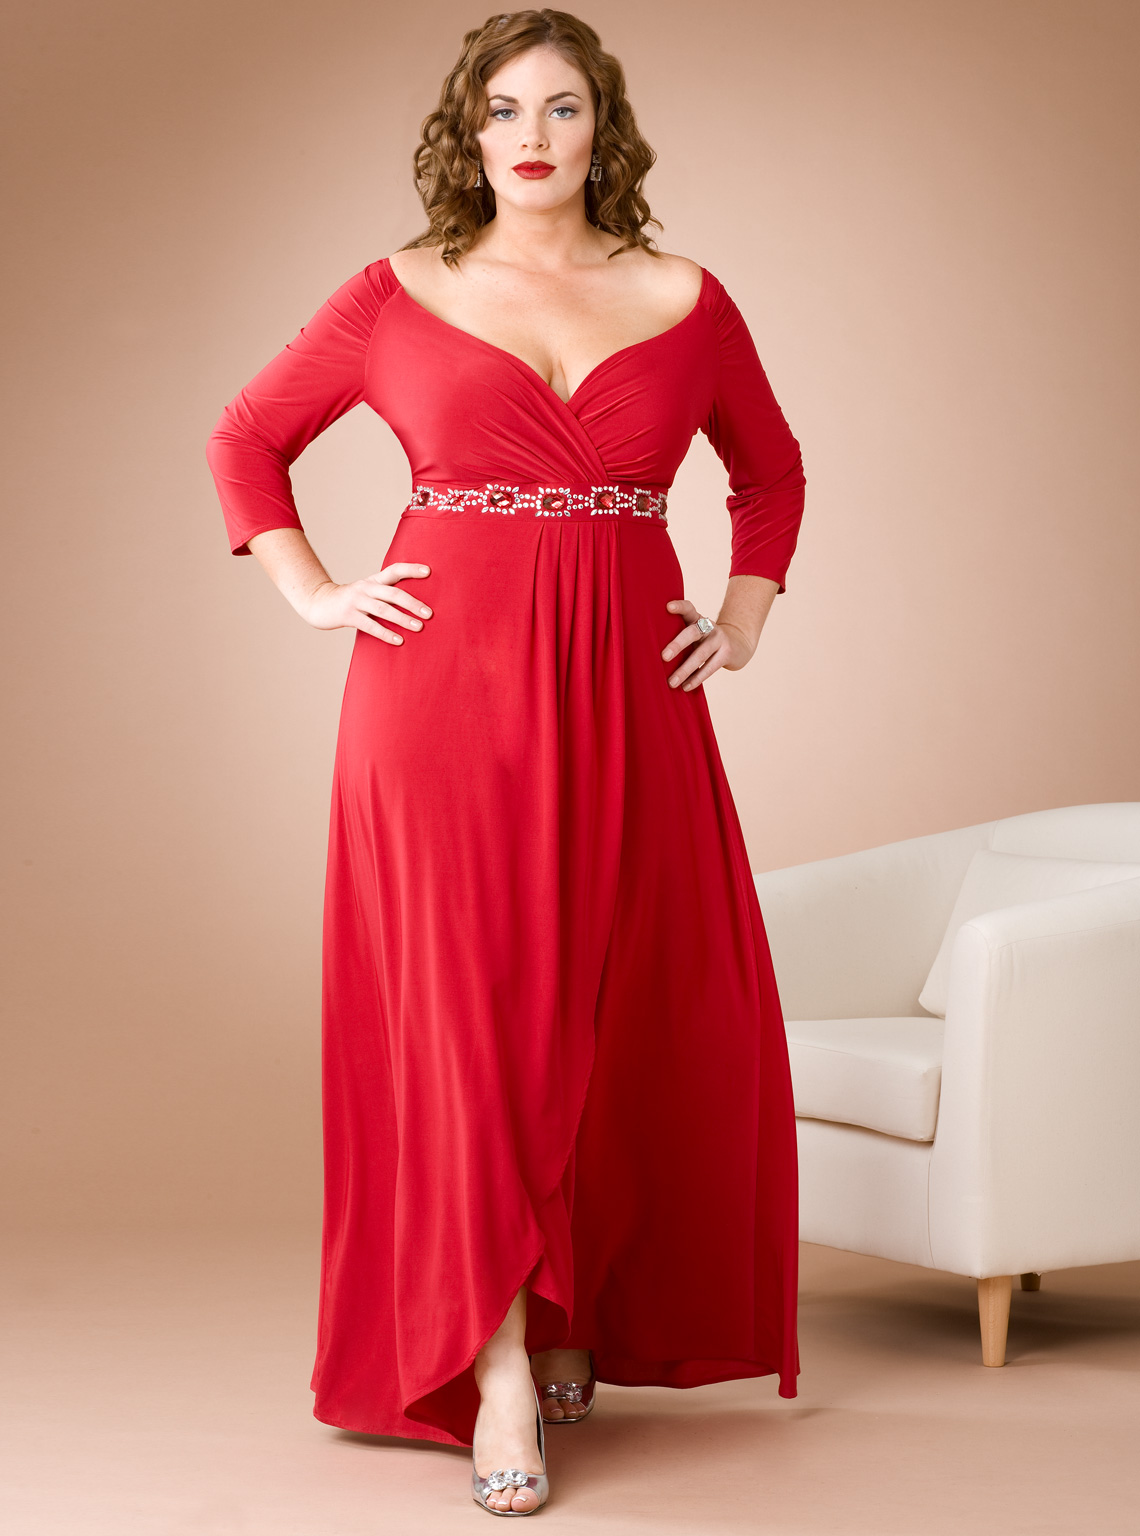 Plus-size fashion is designed for women with full figures and natural curves. Because those curves also come in a variety of body shapes, what looks best on one plus-sized figure might not on another.